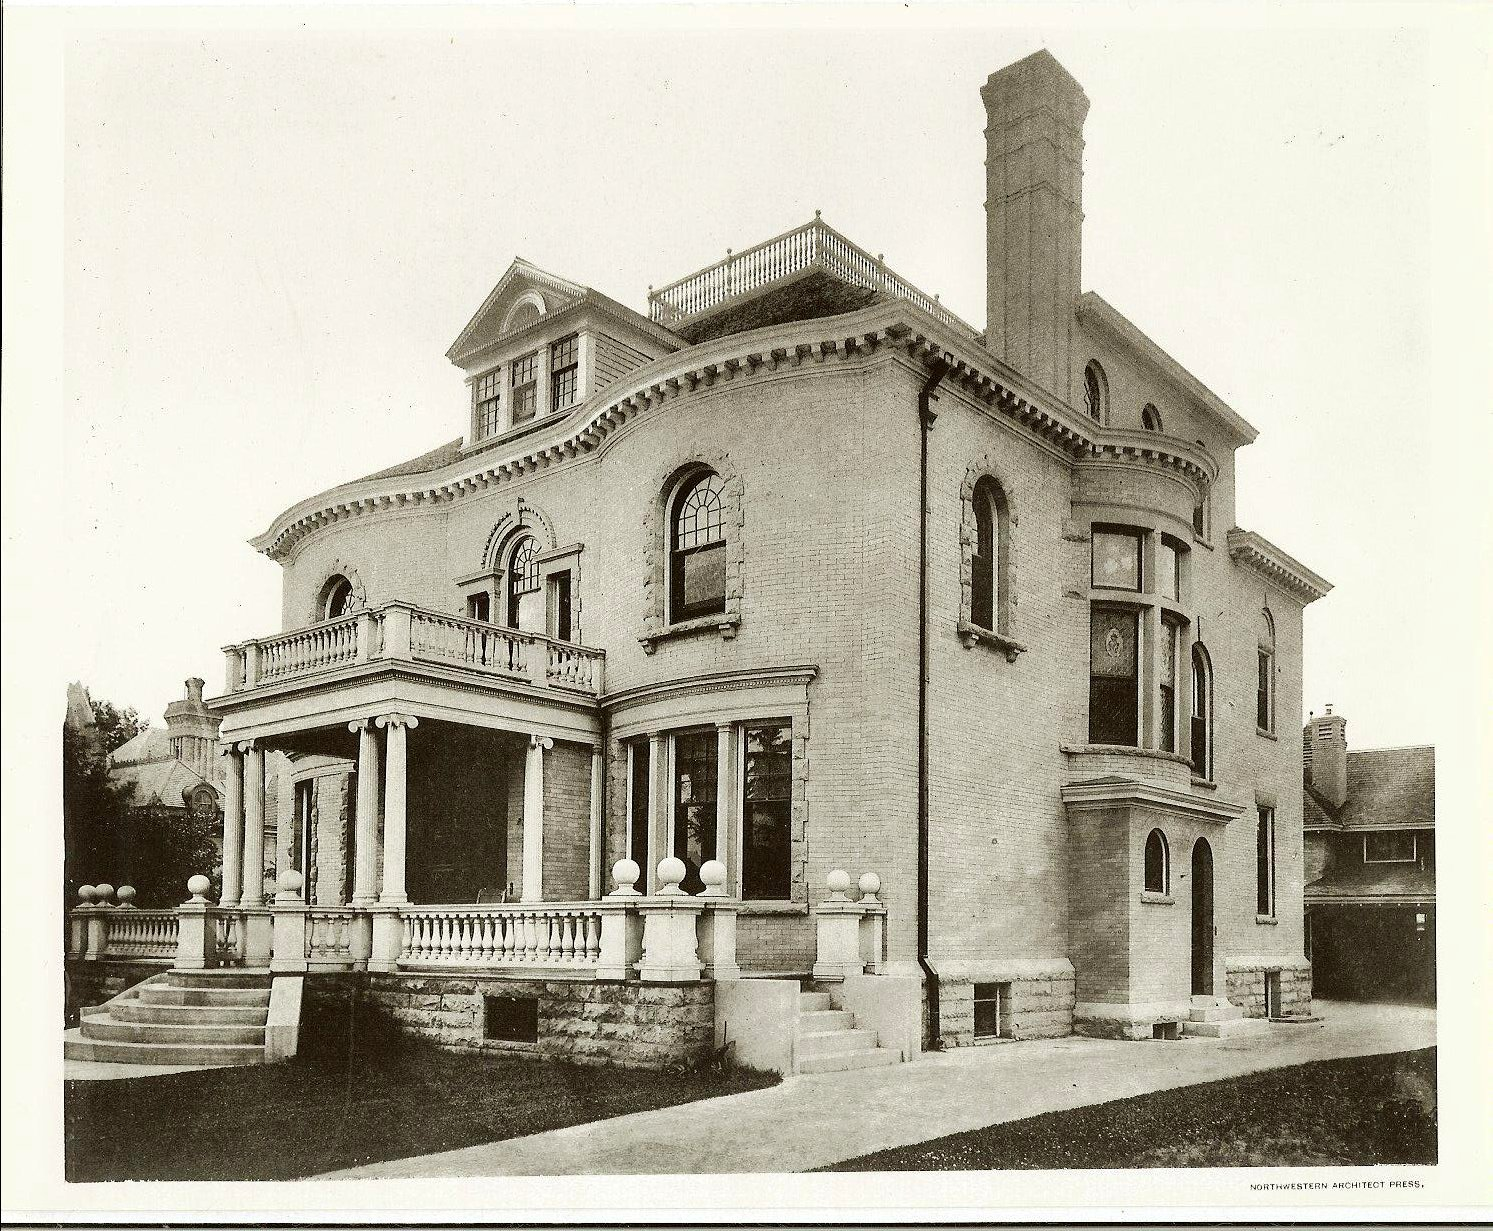 Hinkle-Murphy House, 1886 619 South 10th Street Minneapolis, Minnesota Architect: William Channing Whitney Exterior: Looking from South 10th Street Black & White photograph Northwestern Architect Supplement Vol. 6. No. 7 1886 Minneapolis Library History Collection